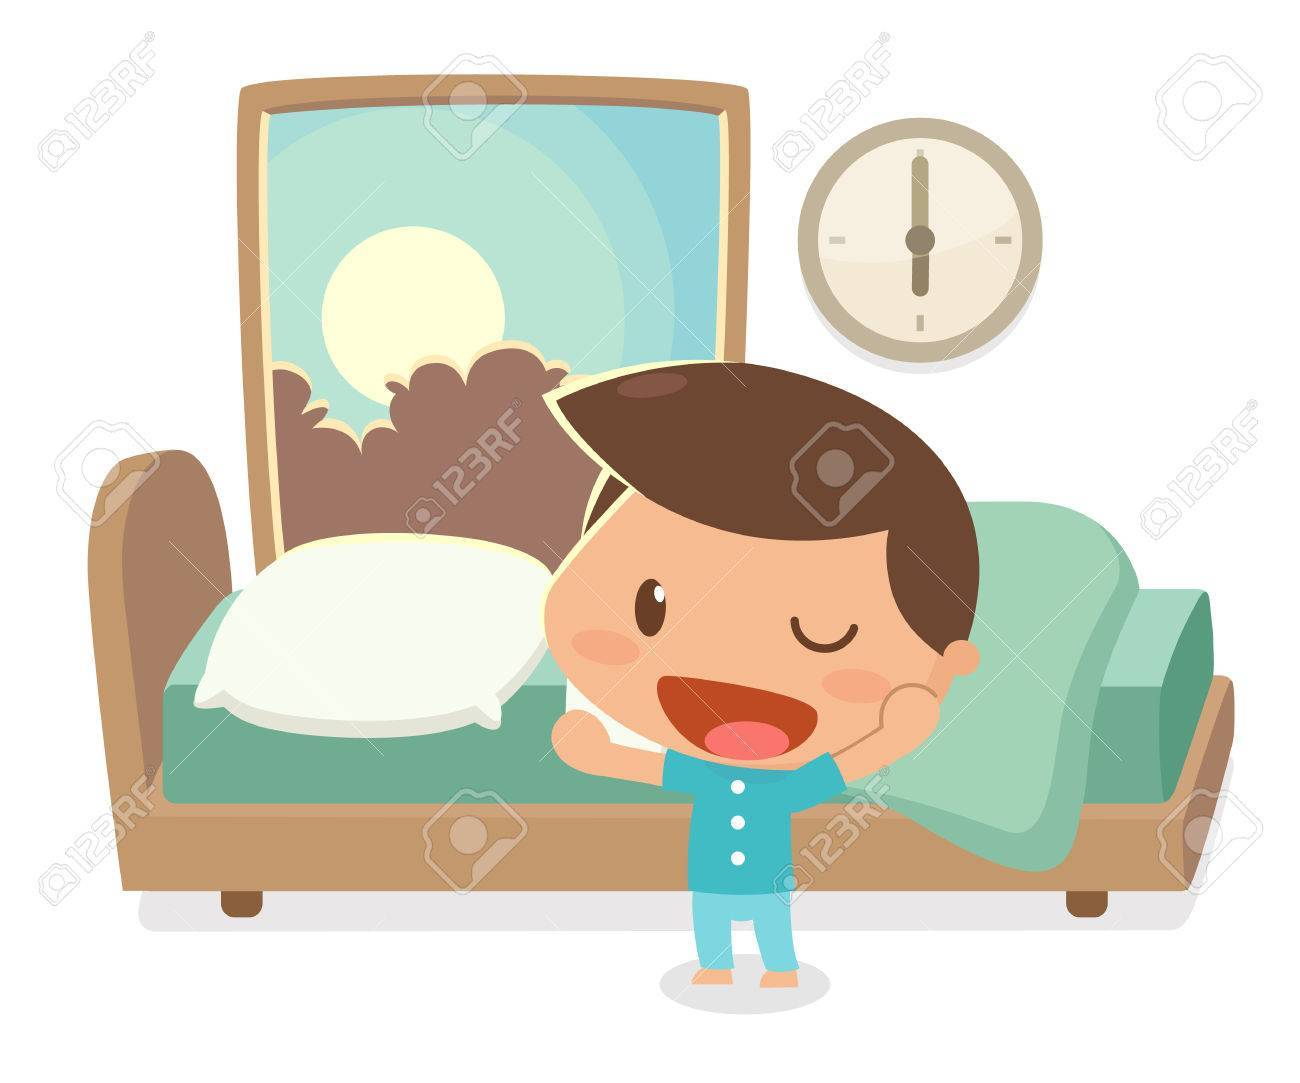 Getting up clipart image free stock Boy waking up clipart 6 » Clipart Portal image free stock